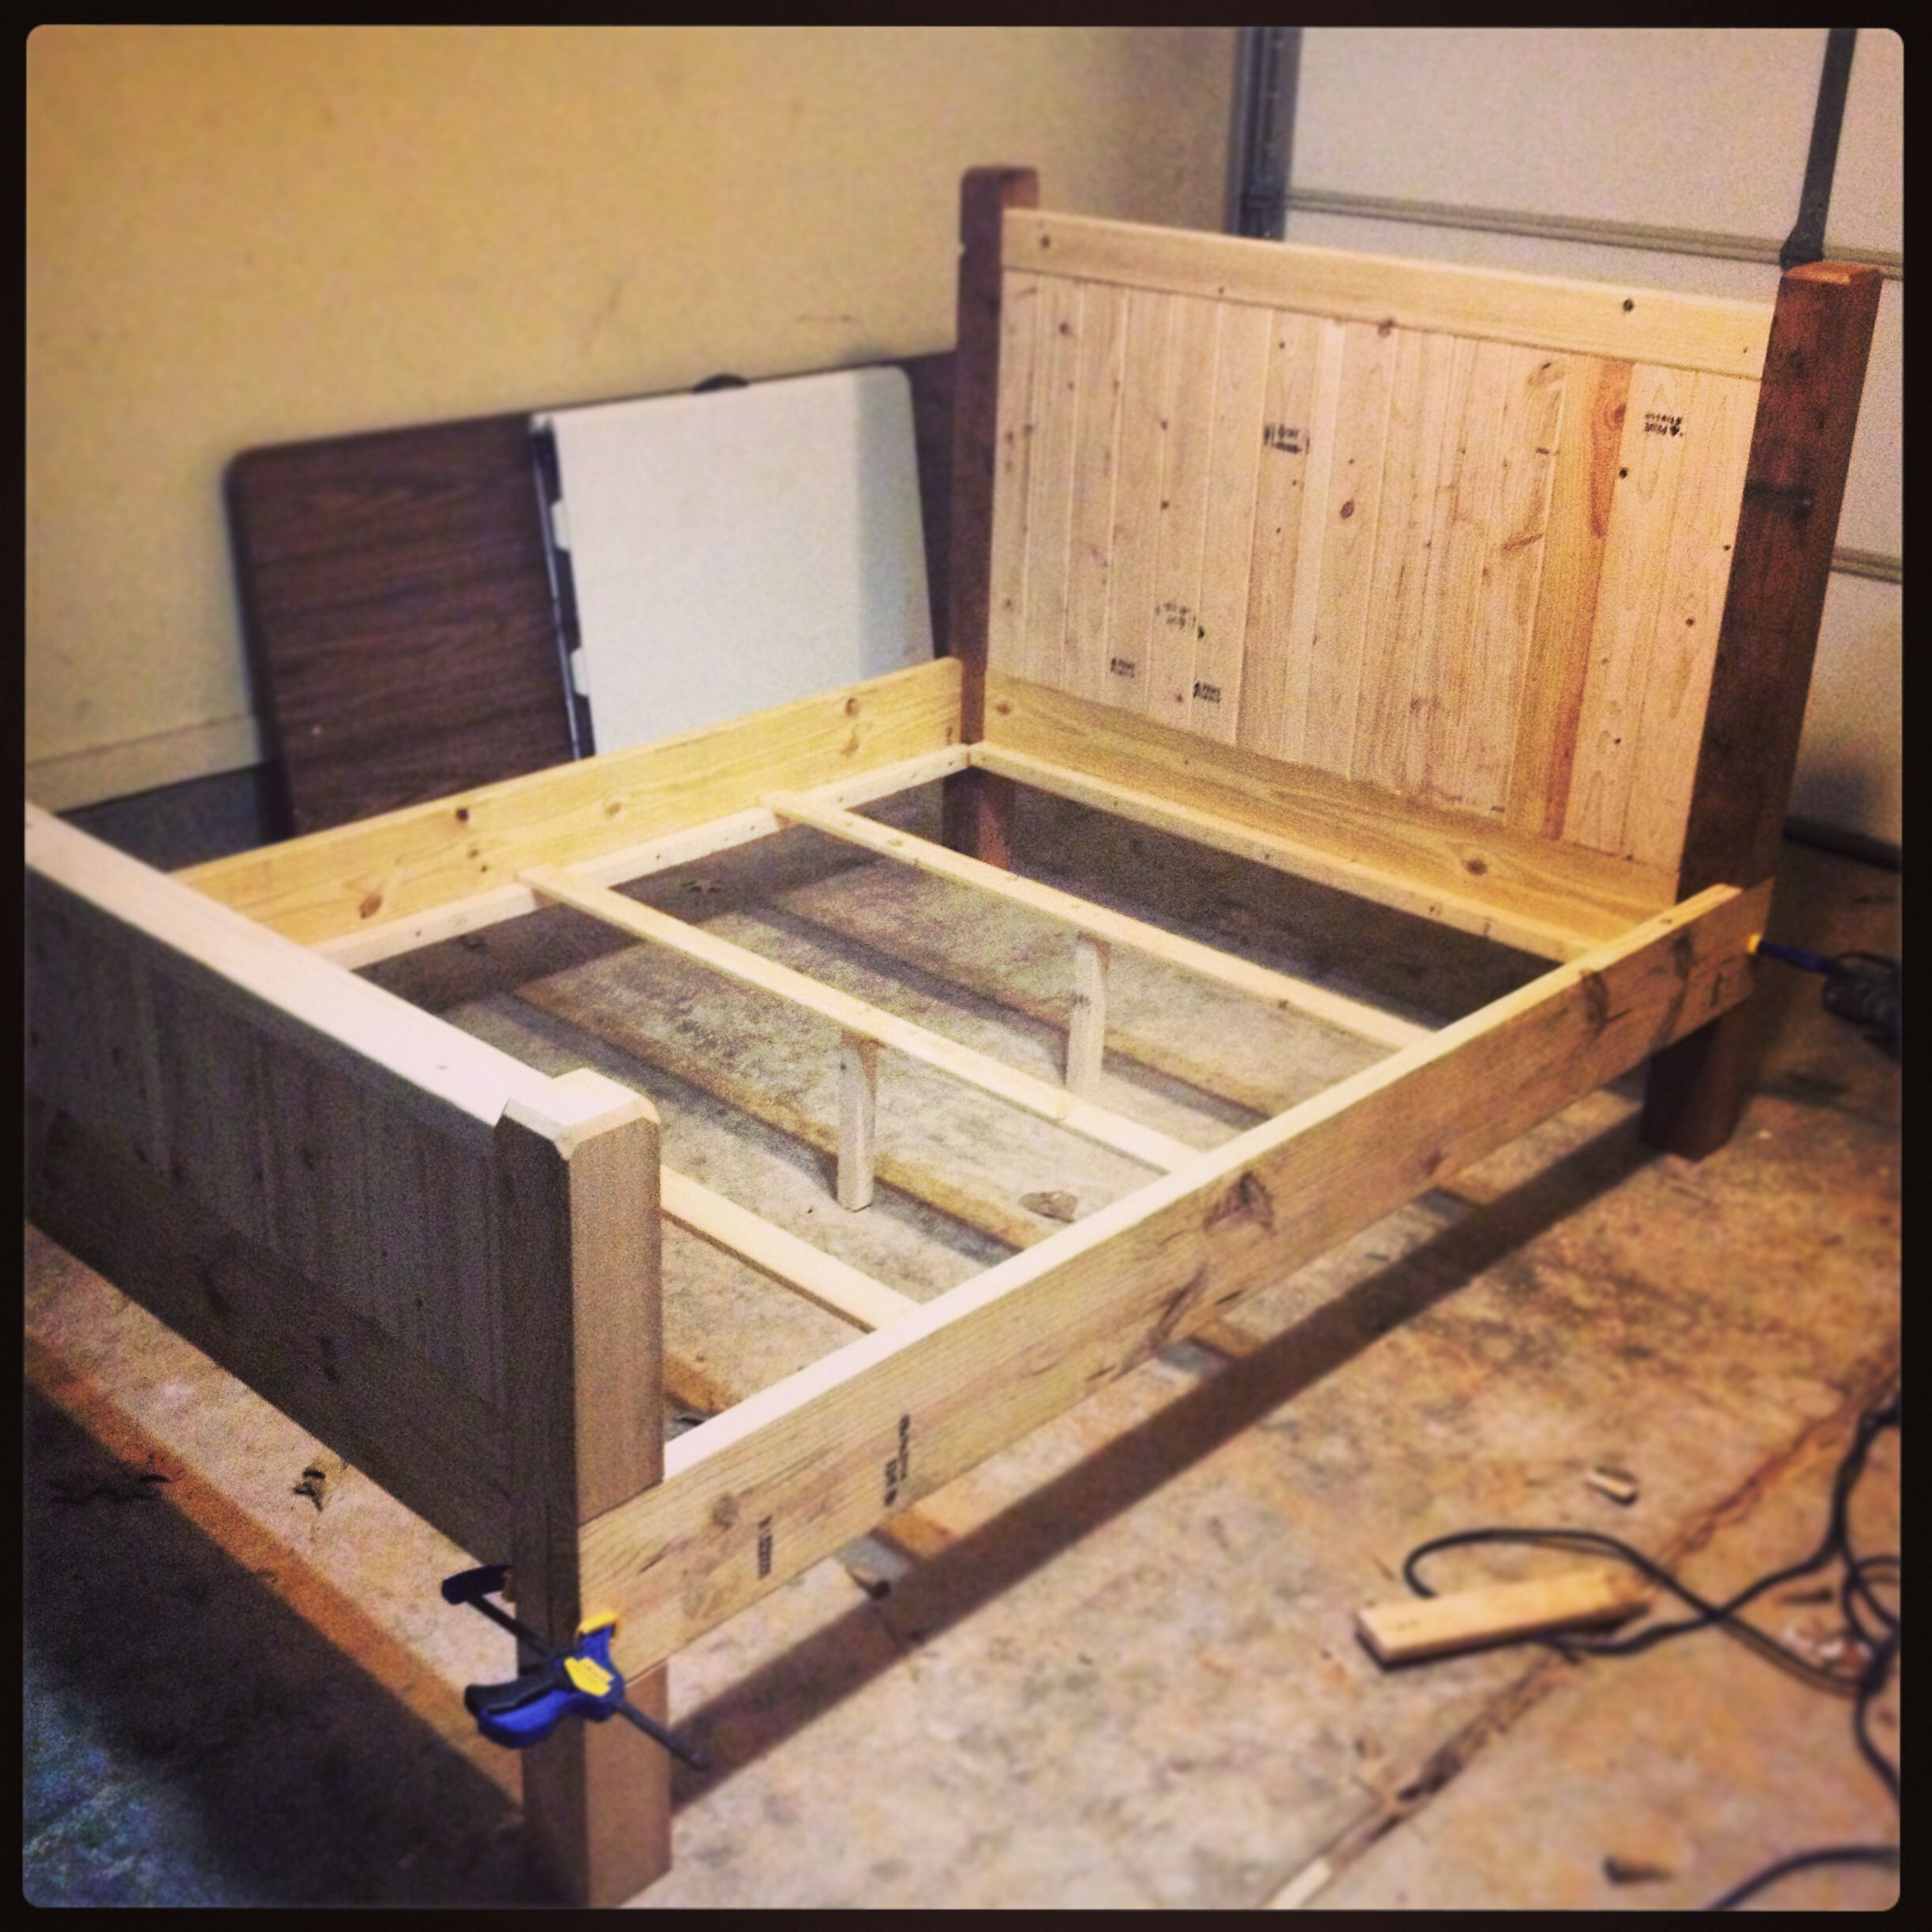 Diy full size bed frame almost finished made with 2x4s for Diy rustic bunk beds